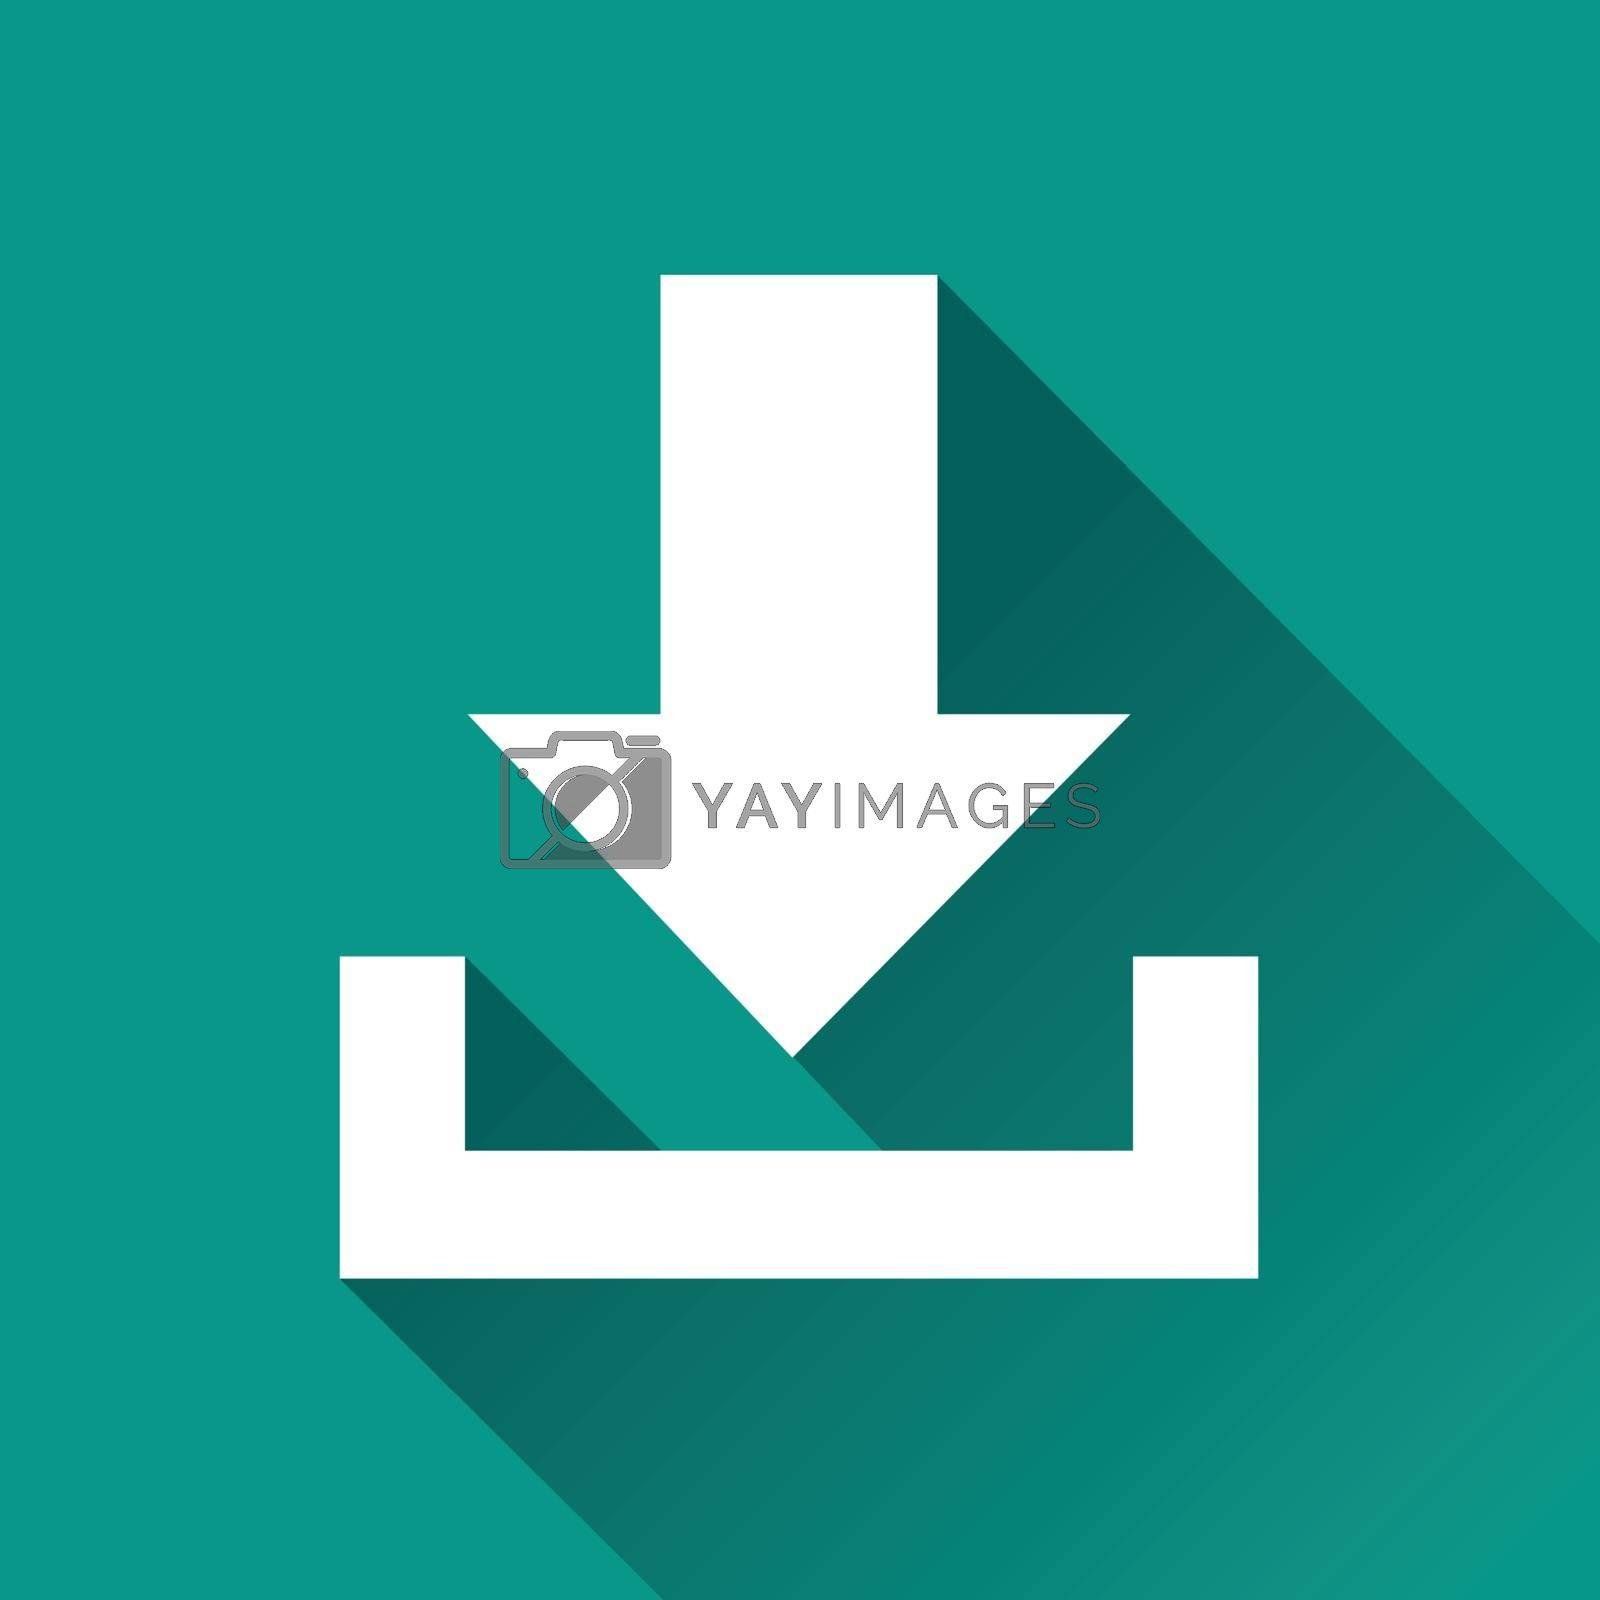 Royalty free image of download flat design icon by nickylarson974